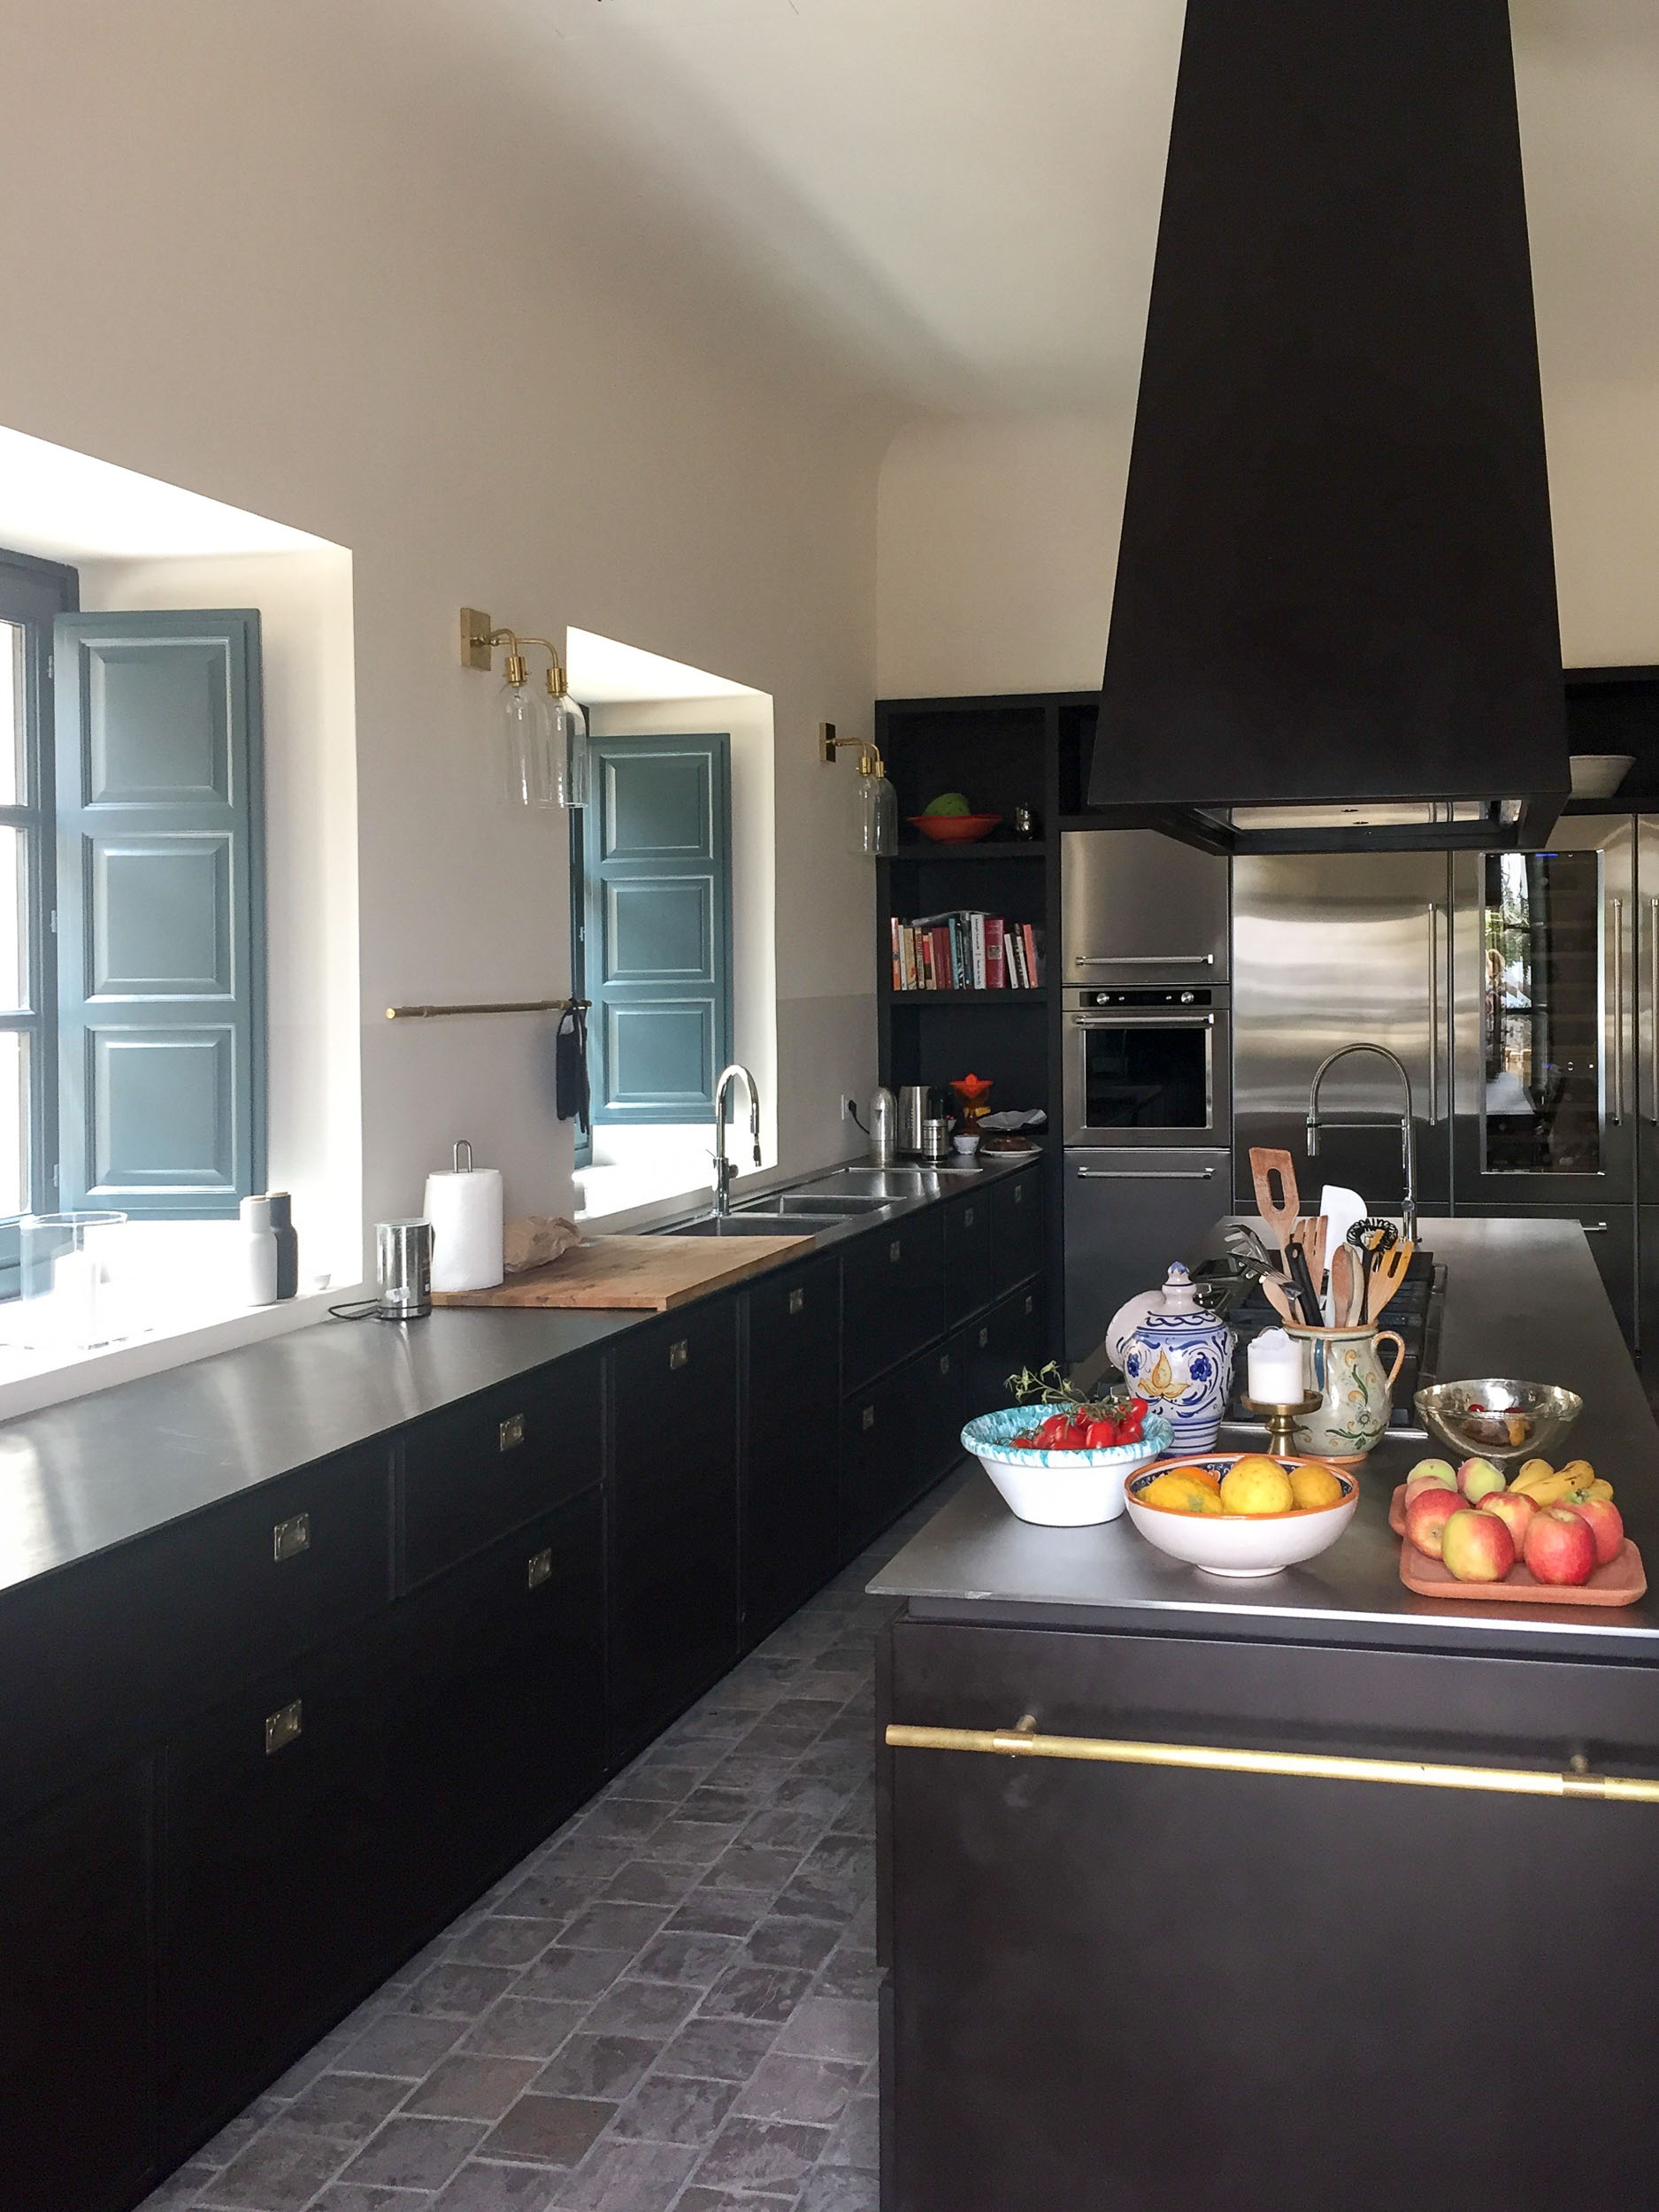 La Prora has a fully equipped professional kitchen